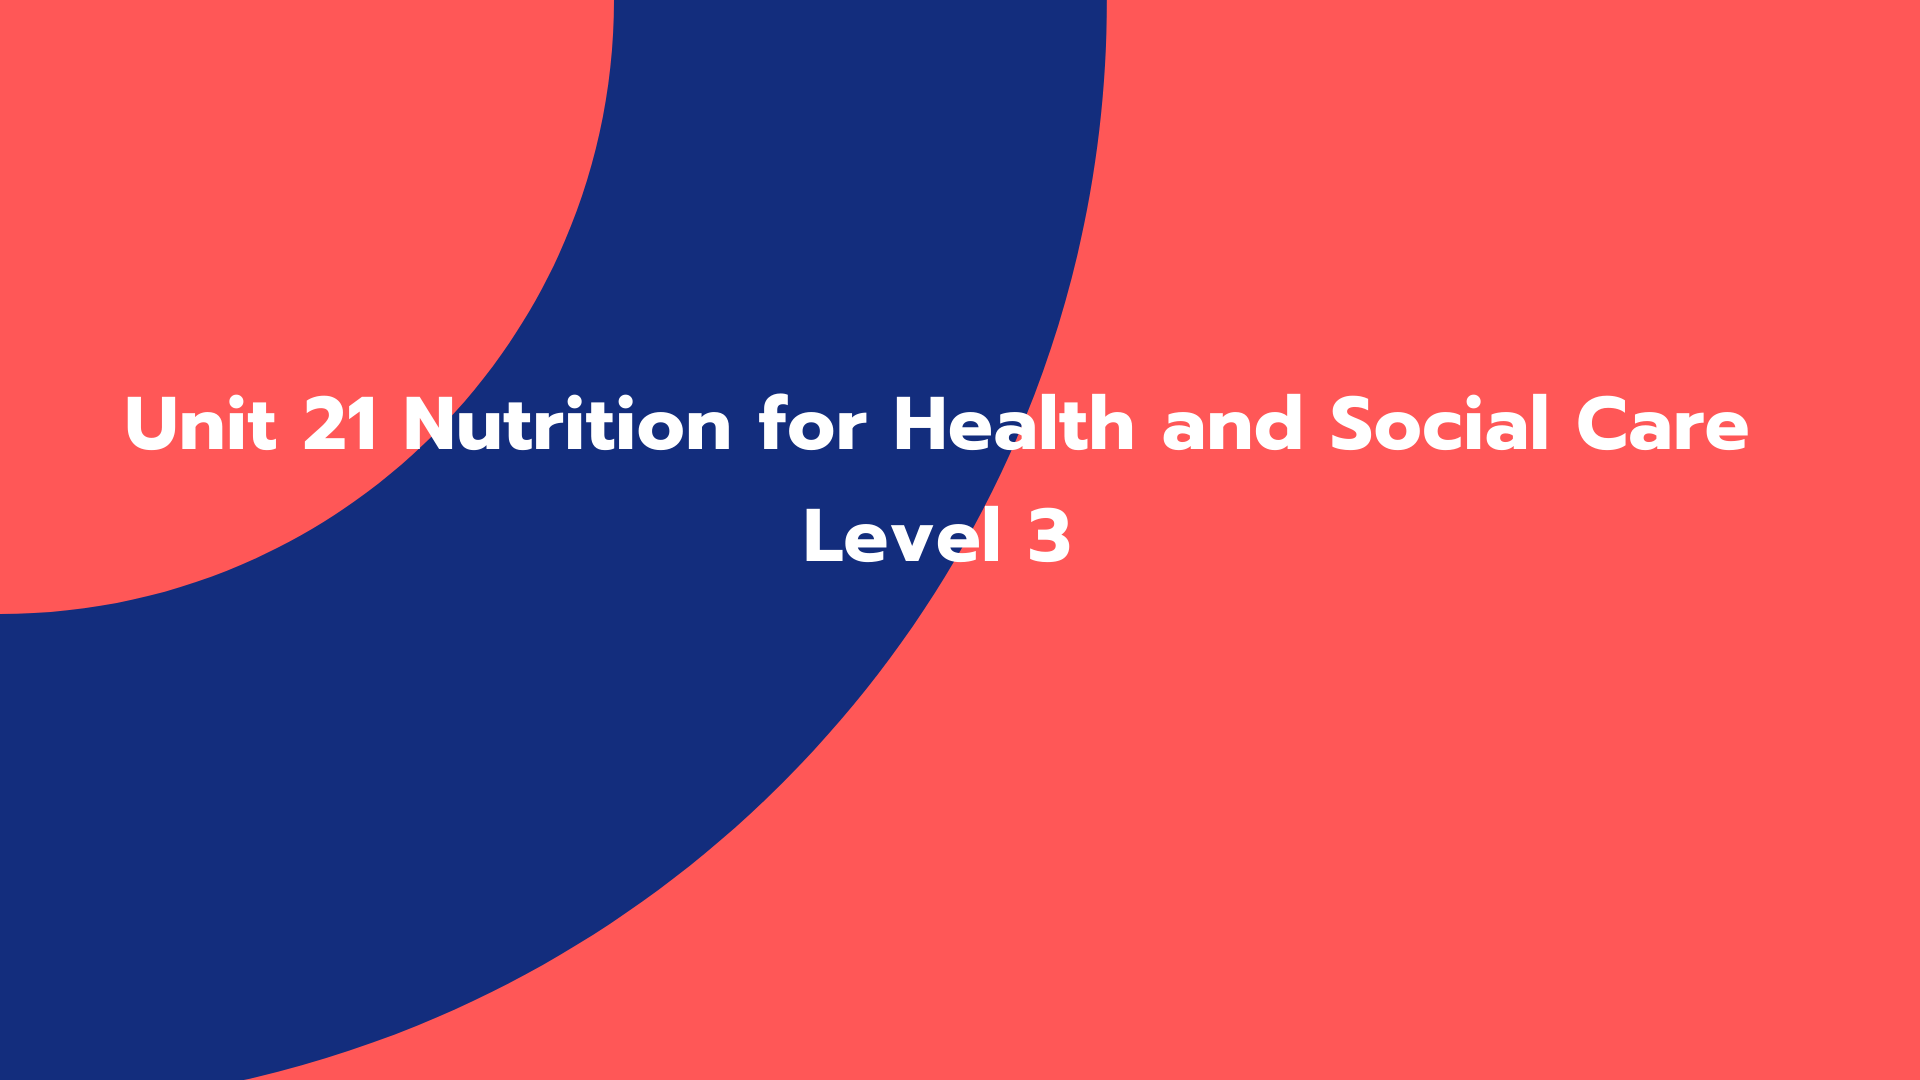 Unit 21 Nutrition for Health and Social Care Level 3